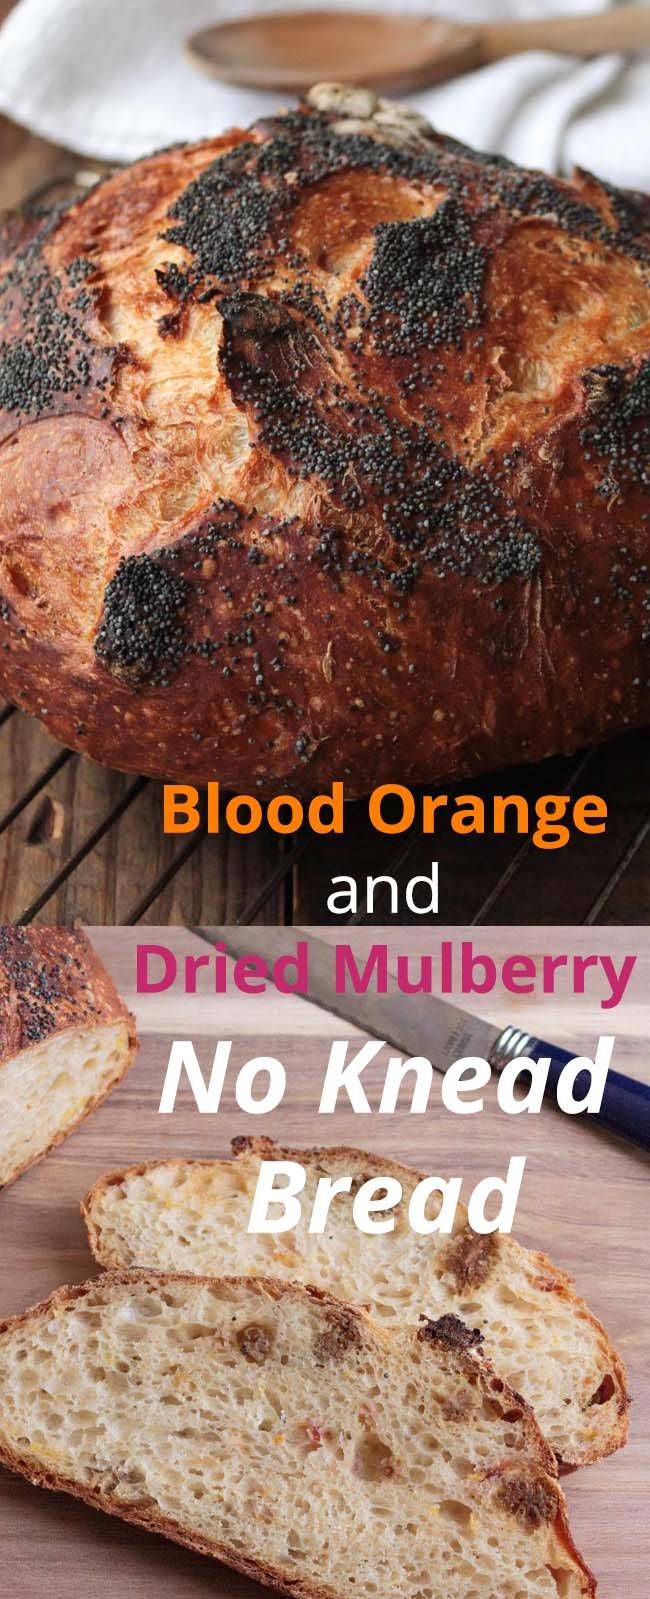 BLOOD ORANGE AND DRIED MULBERRY NO KNEAD BREAD: No knead bread is such a great way to introduce yourself to bread making. This one makes a nice fruity loaf that works well for breakfast.